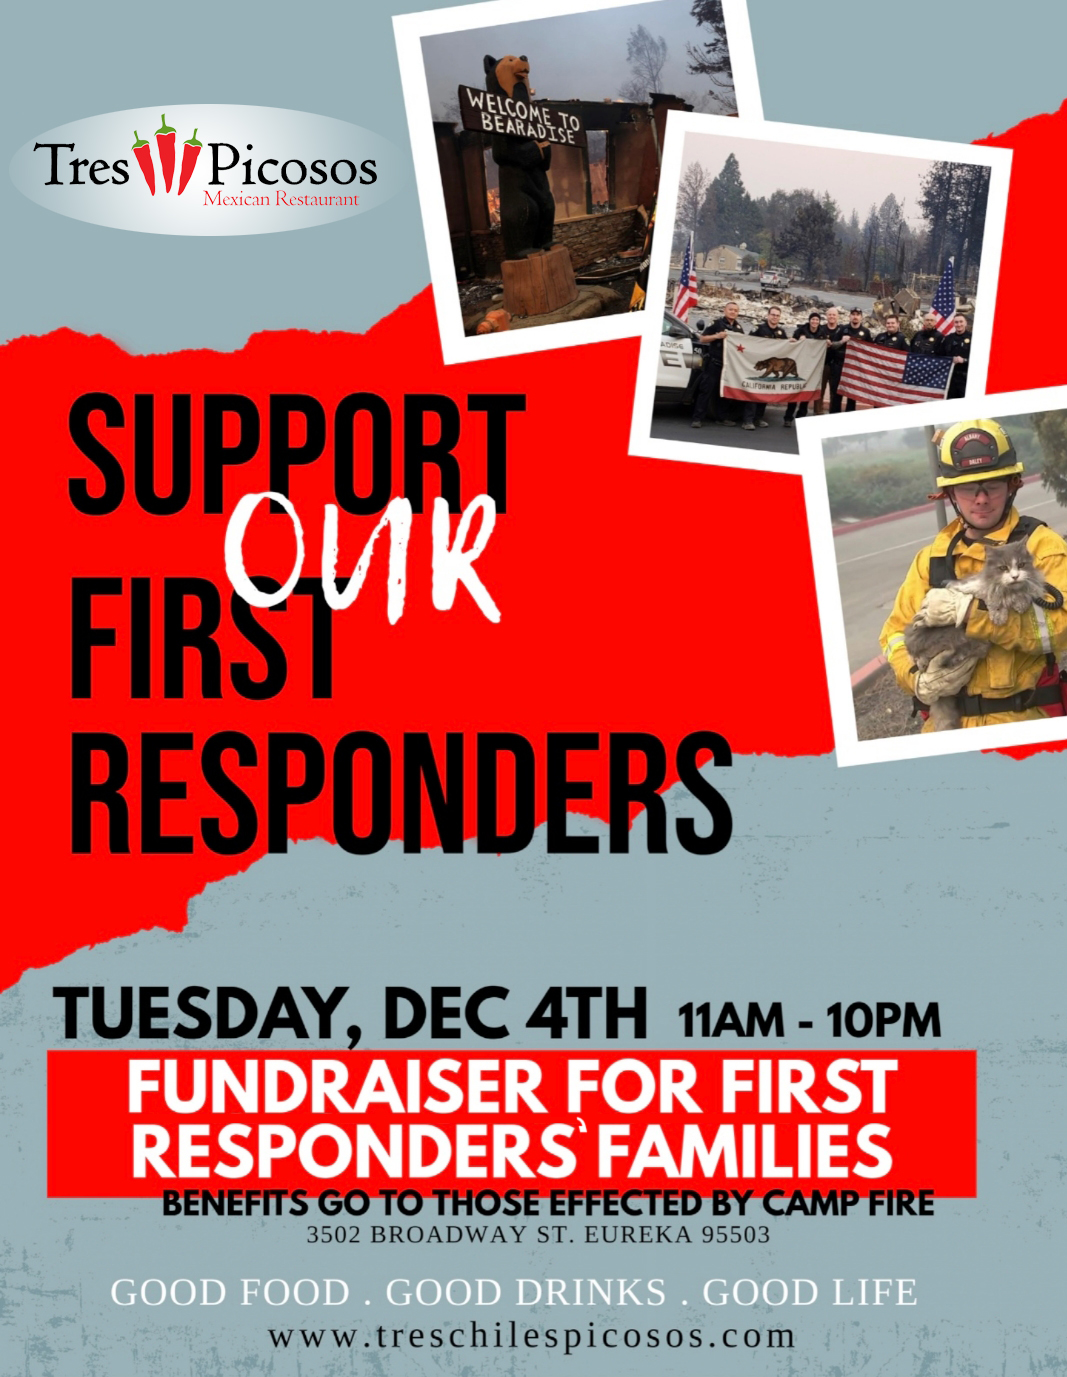 Come Dine with us on Tues, Dec 4 and you will be supporting First Responder Families who were impacted by the Camp Fire!